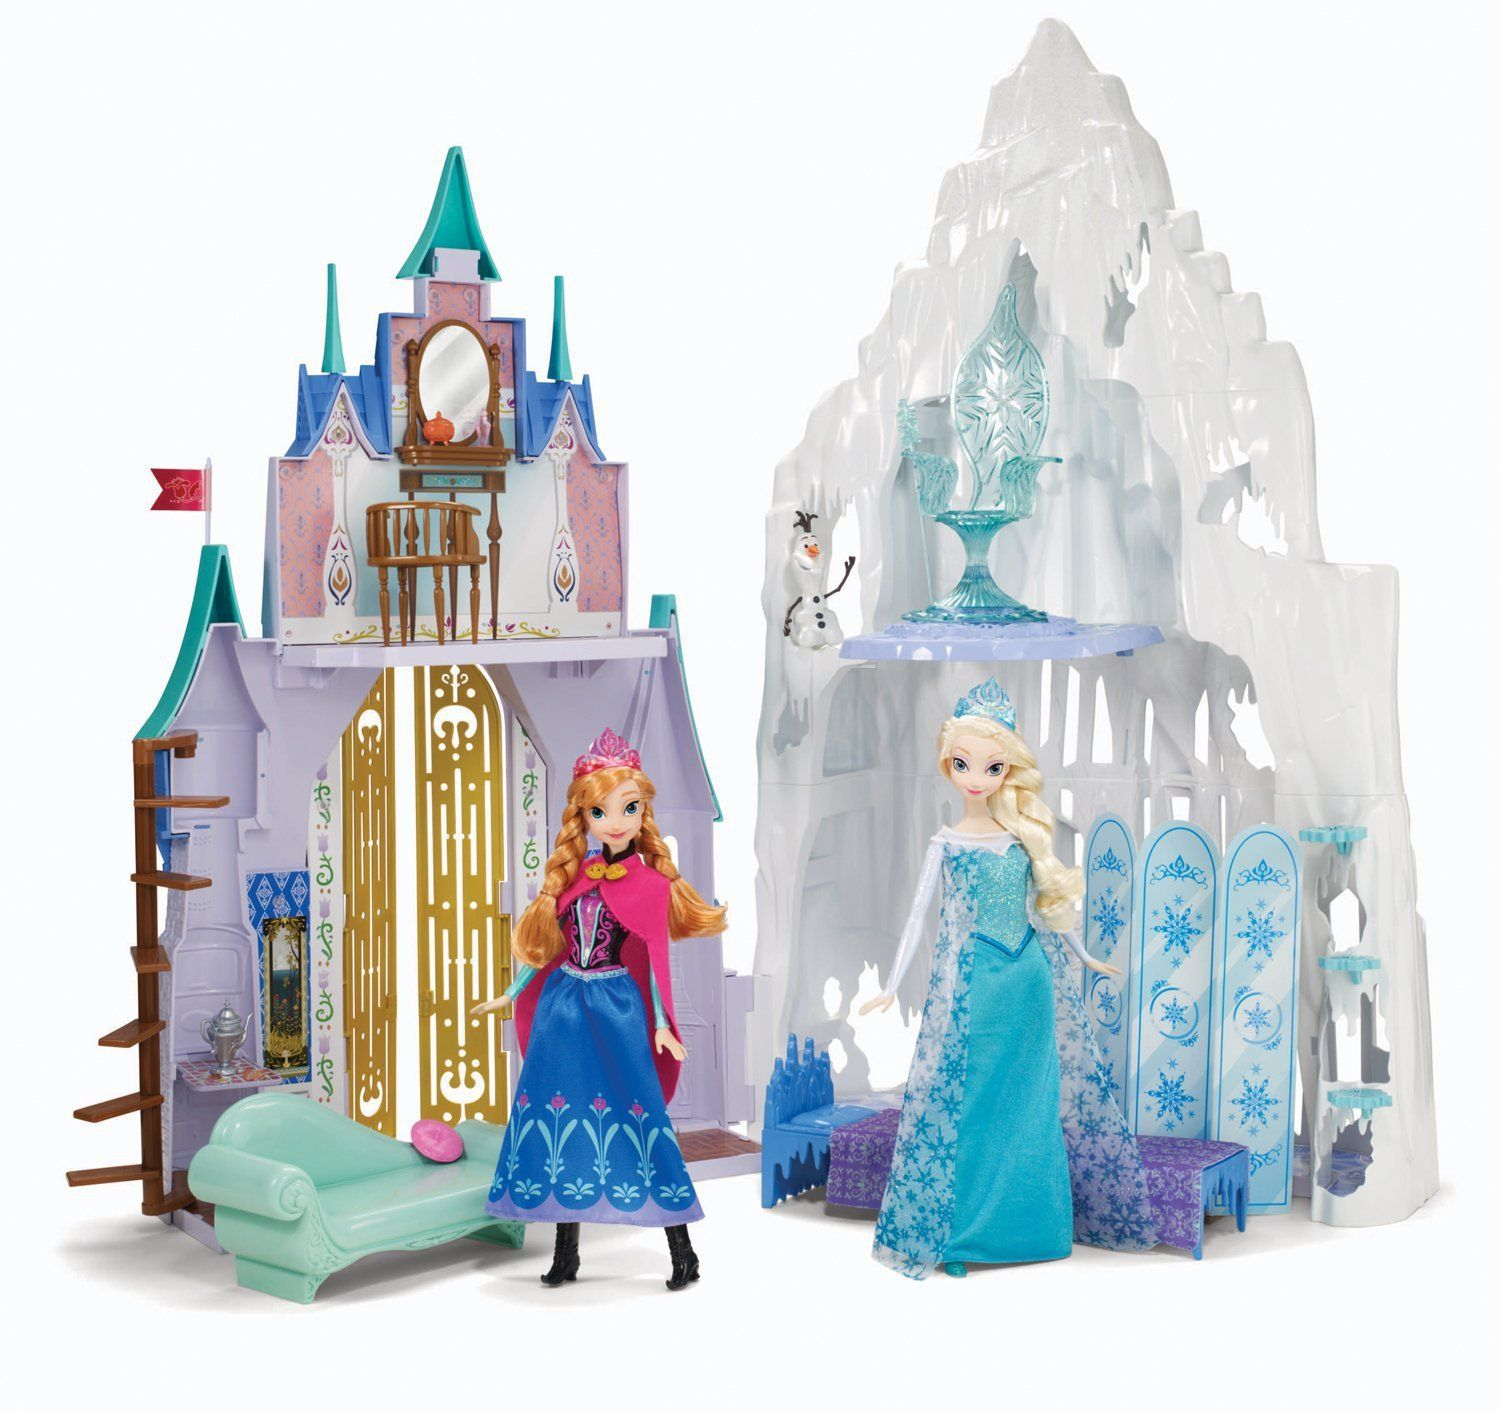 frozen le ch teau de glace elsa et anna achat vente maison poup e cdiscount. Black Bedroom Furniture Sets. Home Design Ideas